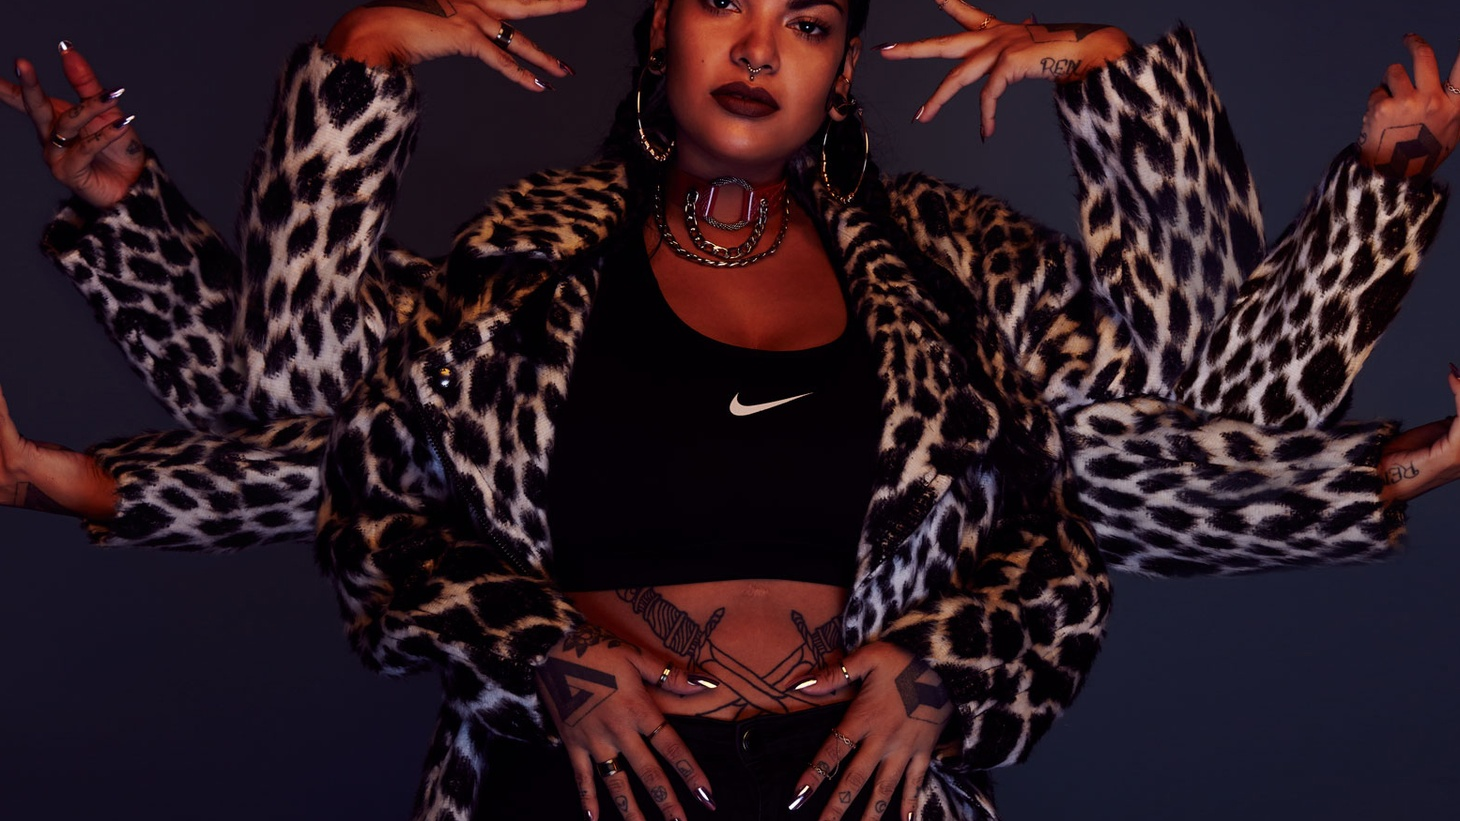 """Chilean rapper Tomasa Del Real was a sought after tattoo artist in her native Chile, before she turned """"Queen of Neo-Perro""""(the dance and culture that surrounds Reggaetón)."""